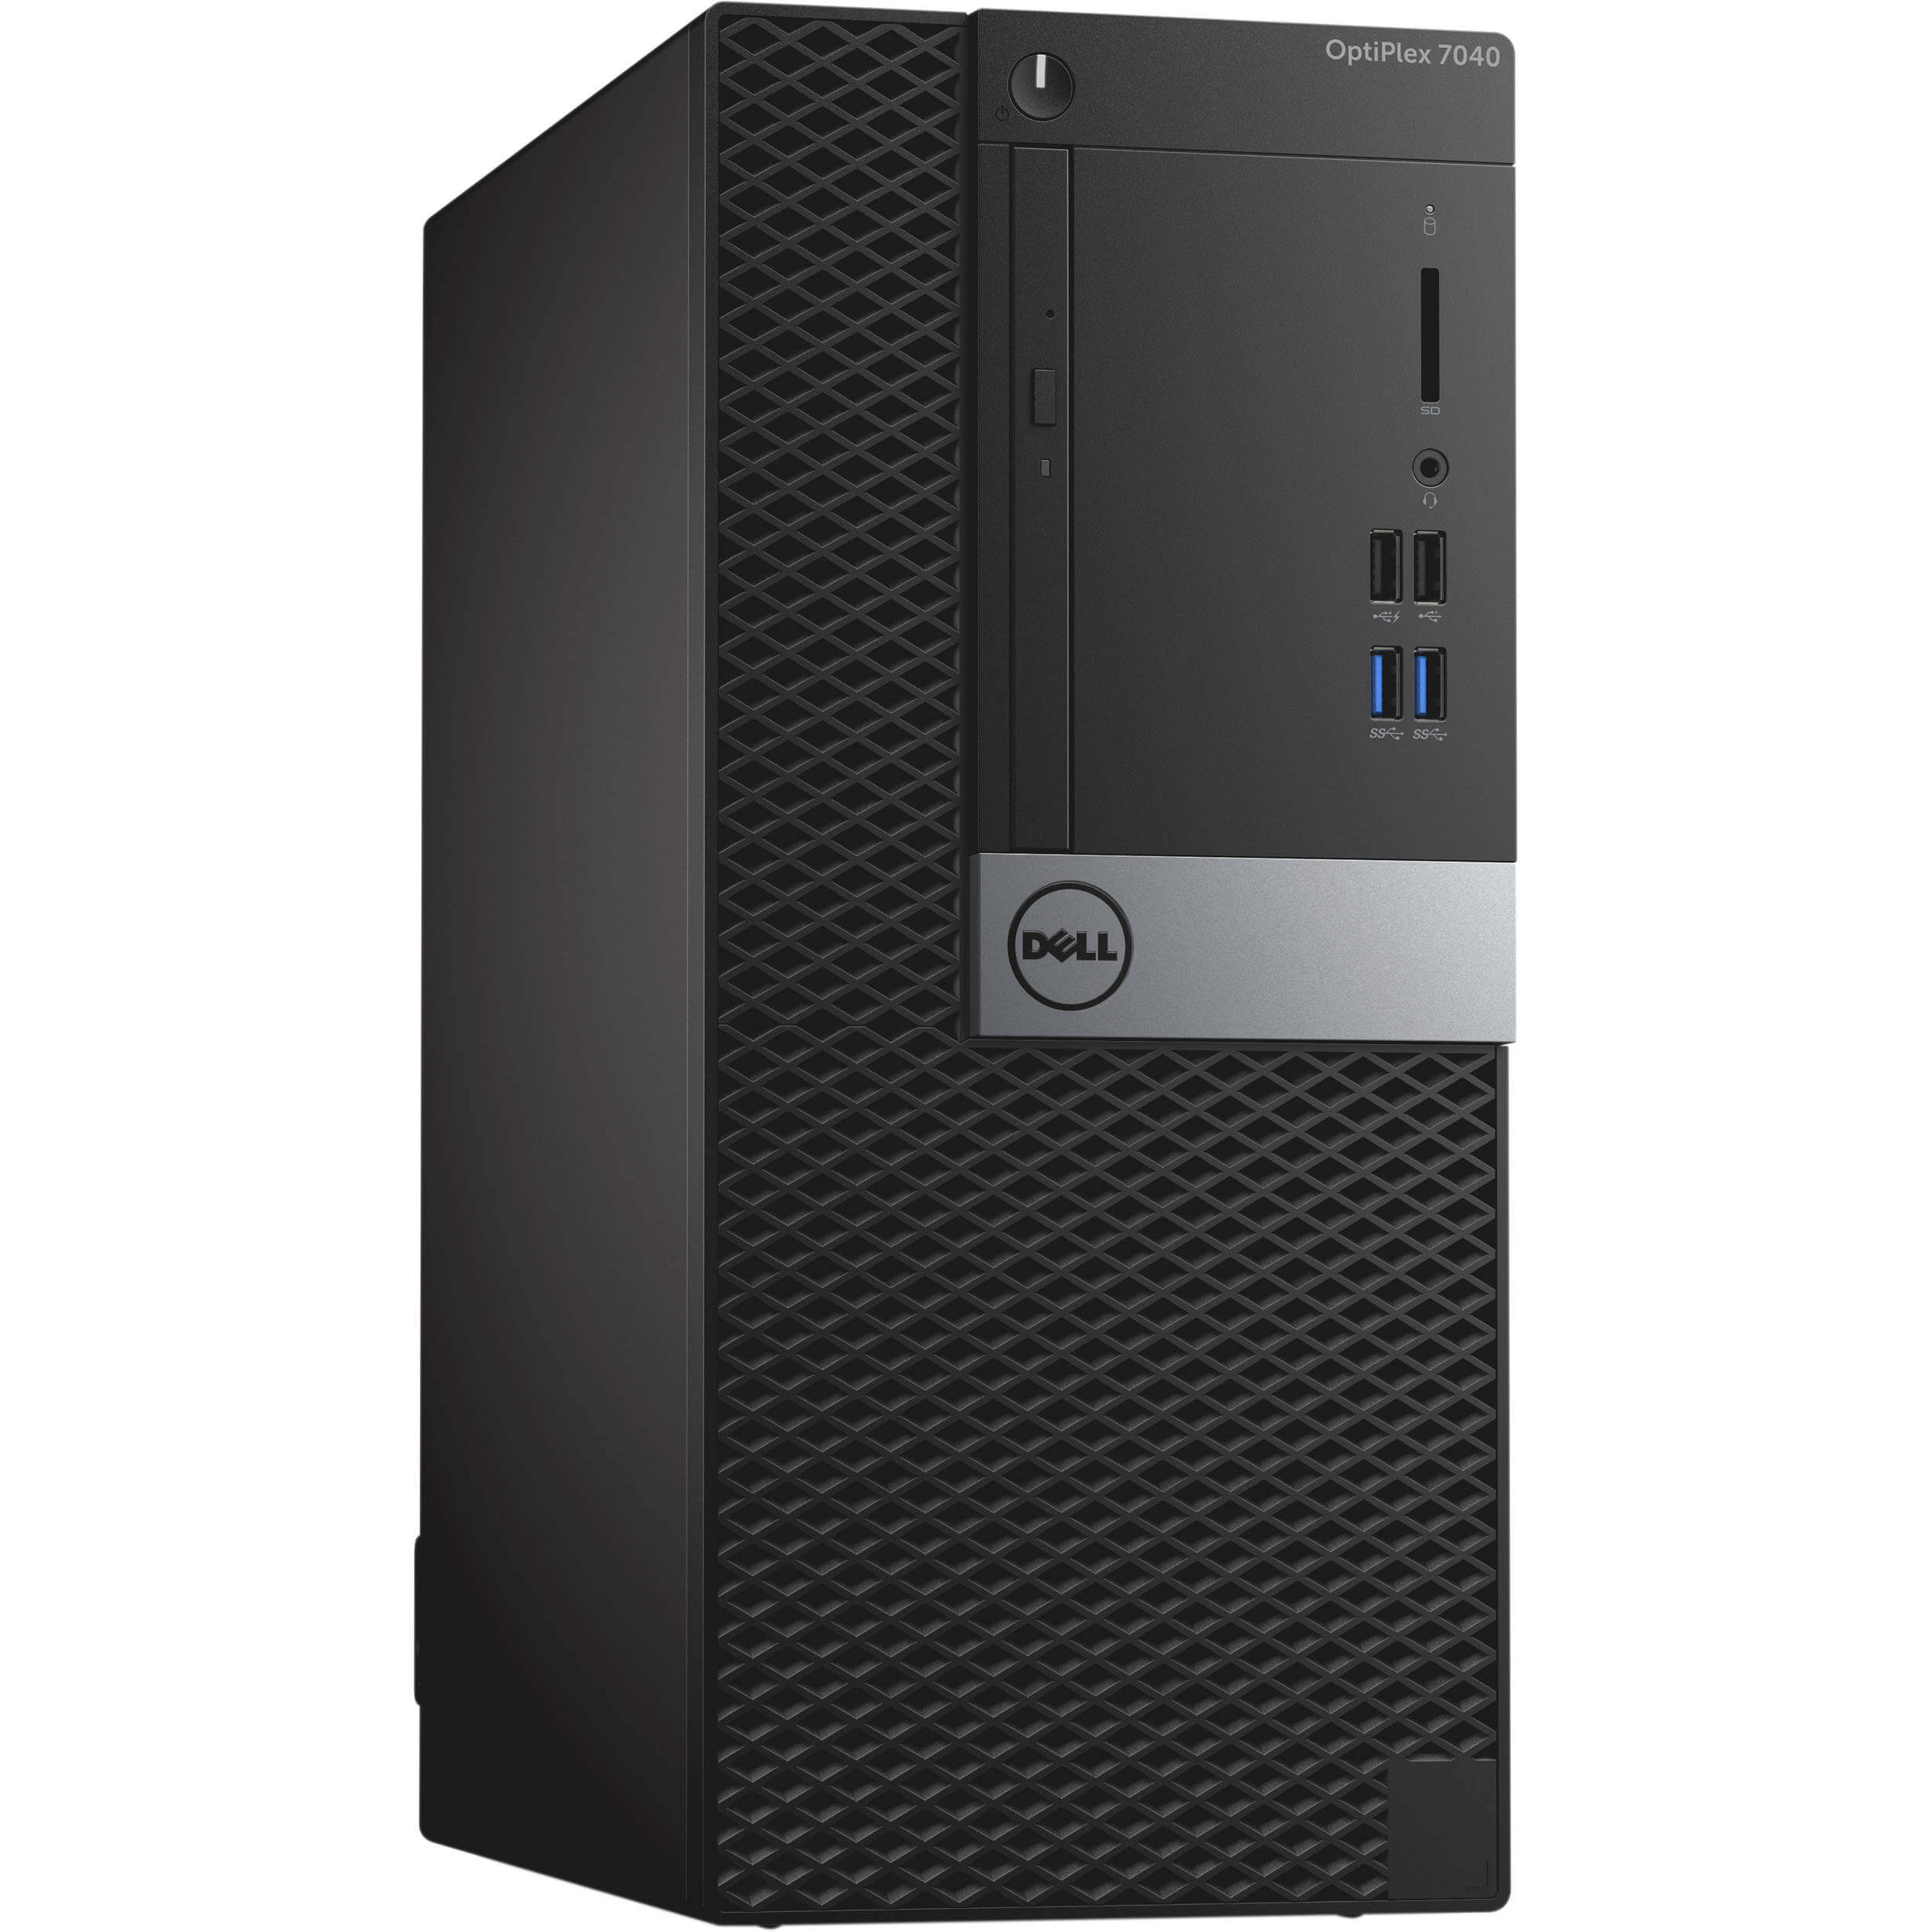 DELL 7040 MINI TOWER I7-6700 3.4 / 16384 MB DDR4 / 256 GB SSD + 1TB NOVE / DVD-RW / WINDOWS 10 PRO / GEFORCE GTX 1050TI 4GB